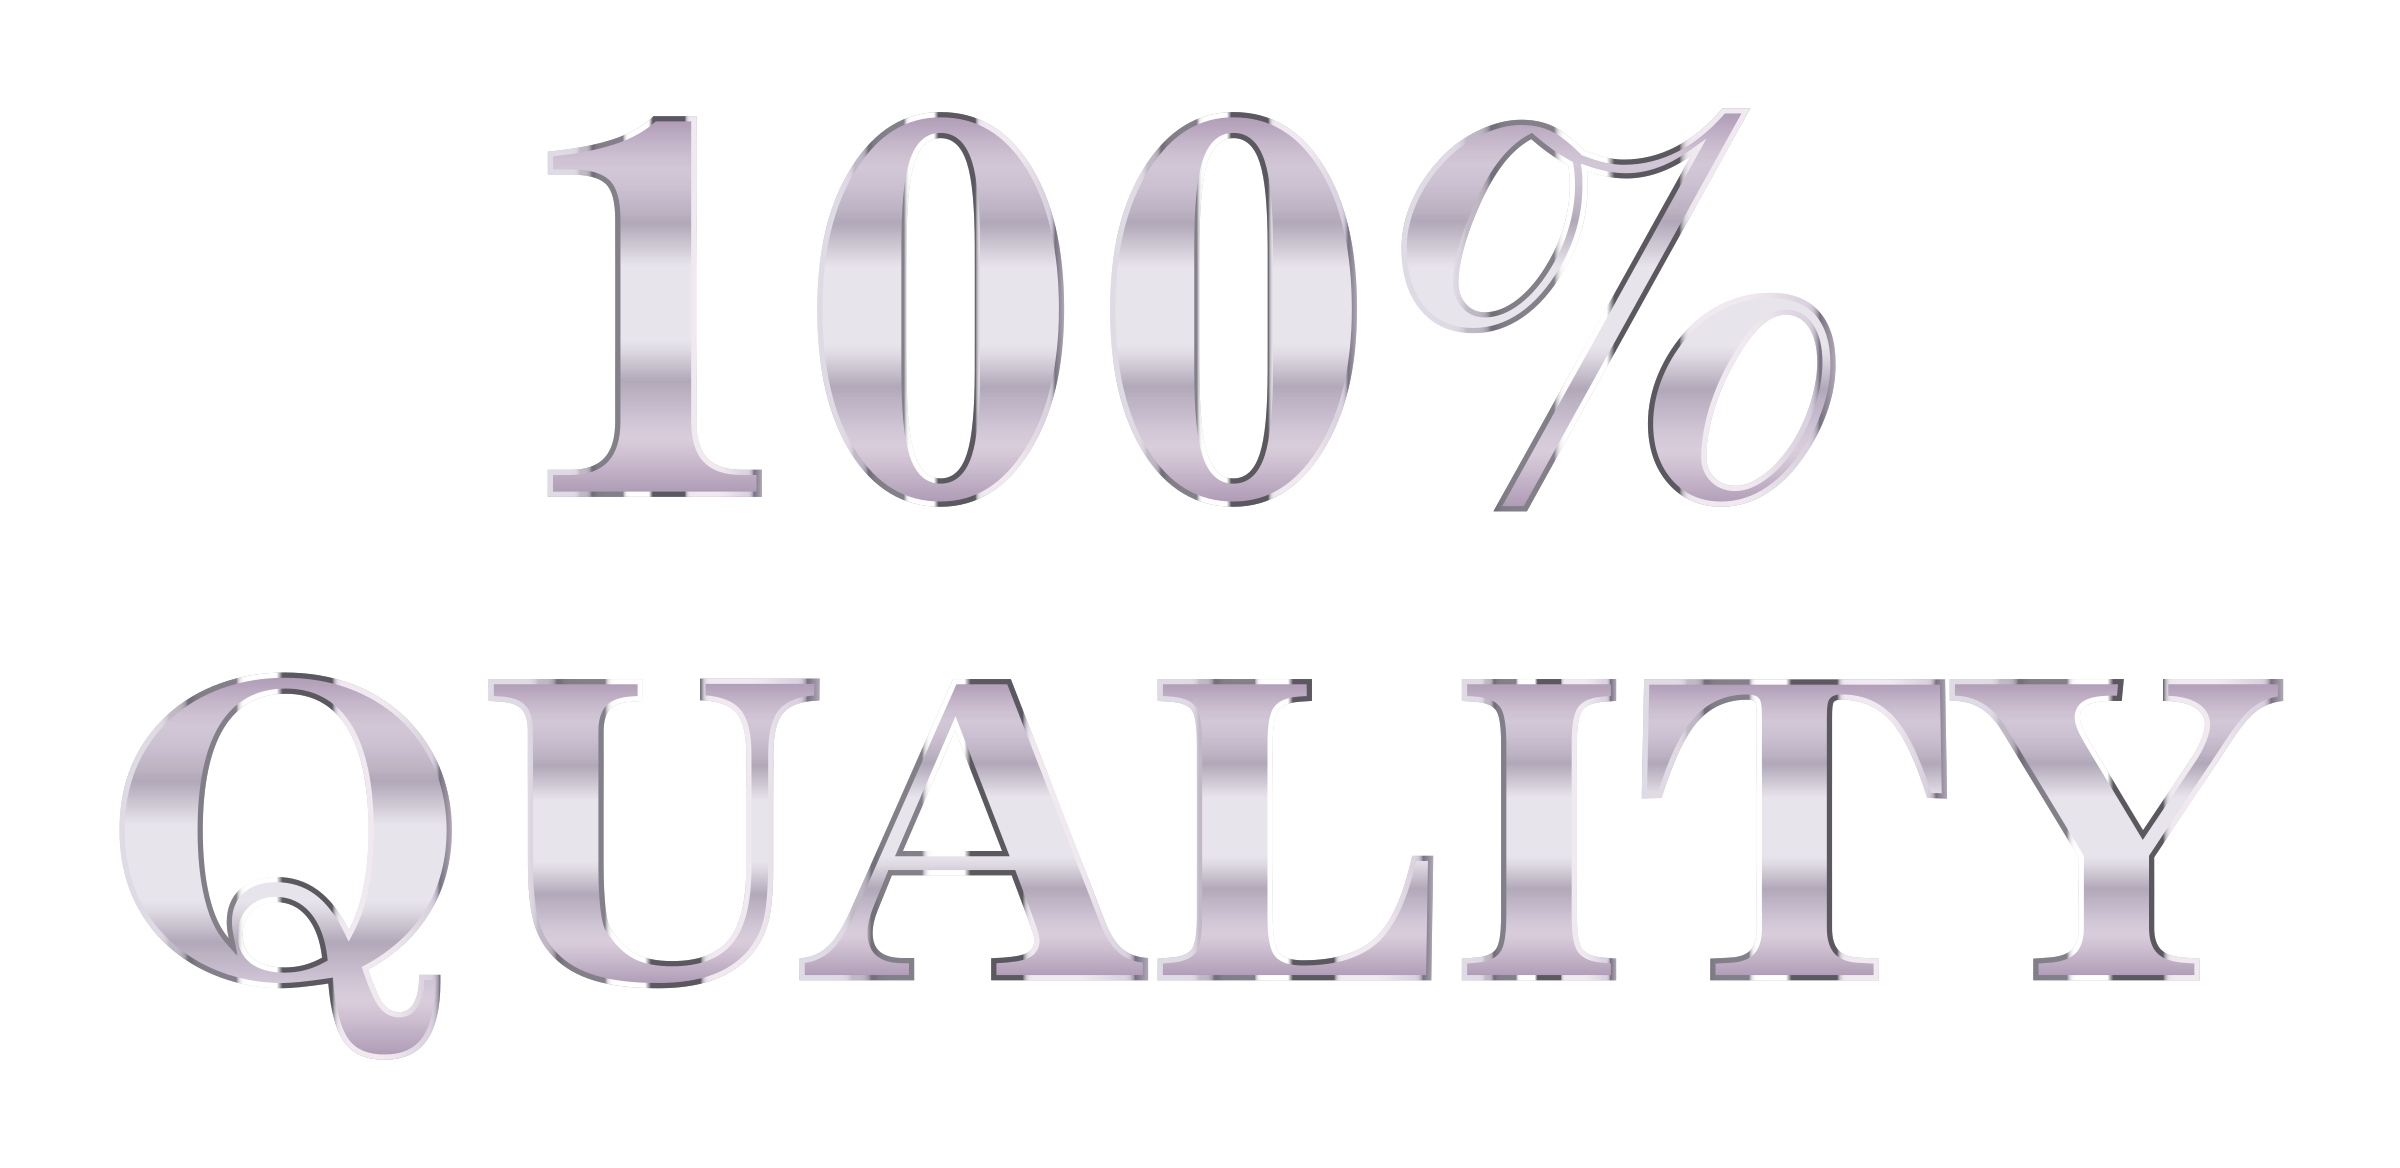 100 clipart 100 percent. Quality typography silver no